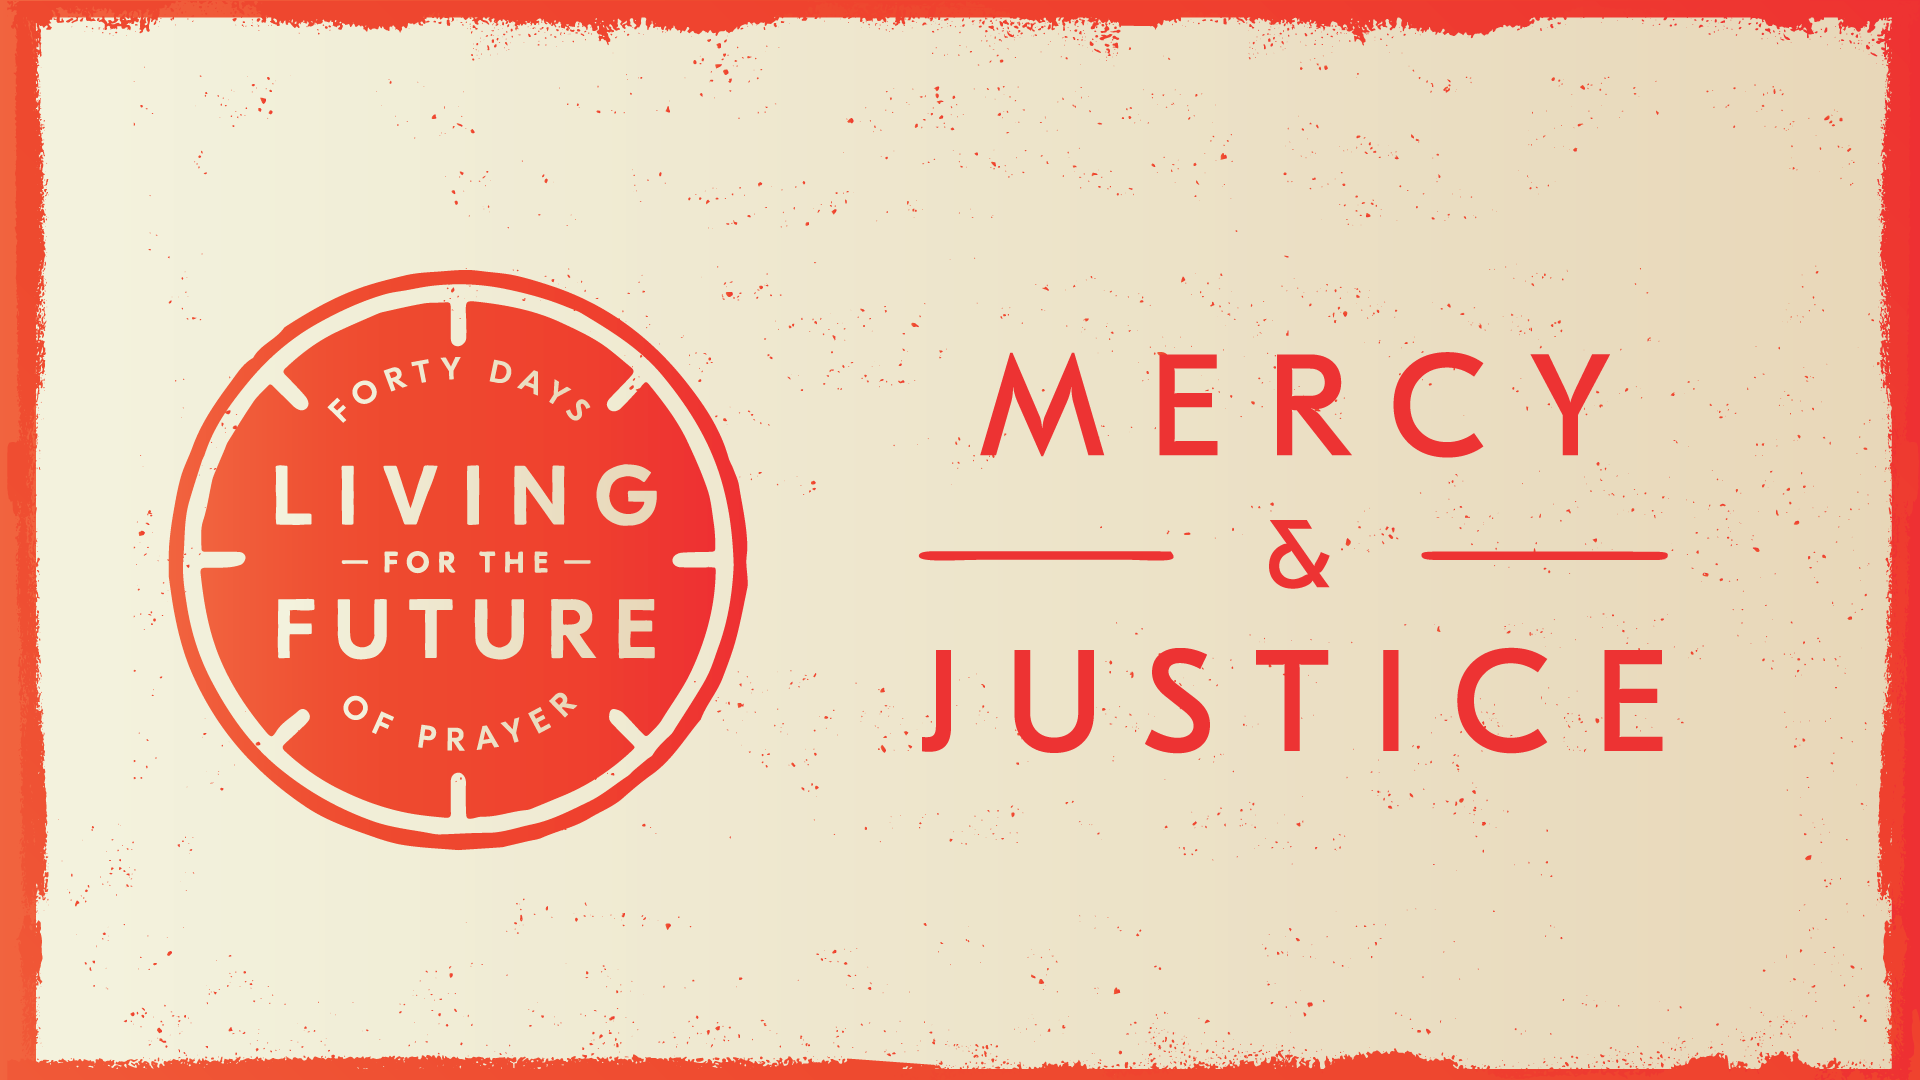 40 Days Of Prayer: Mercy & Justice Ministry    December 21st, 2018